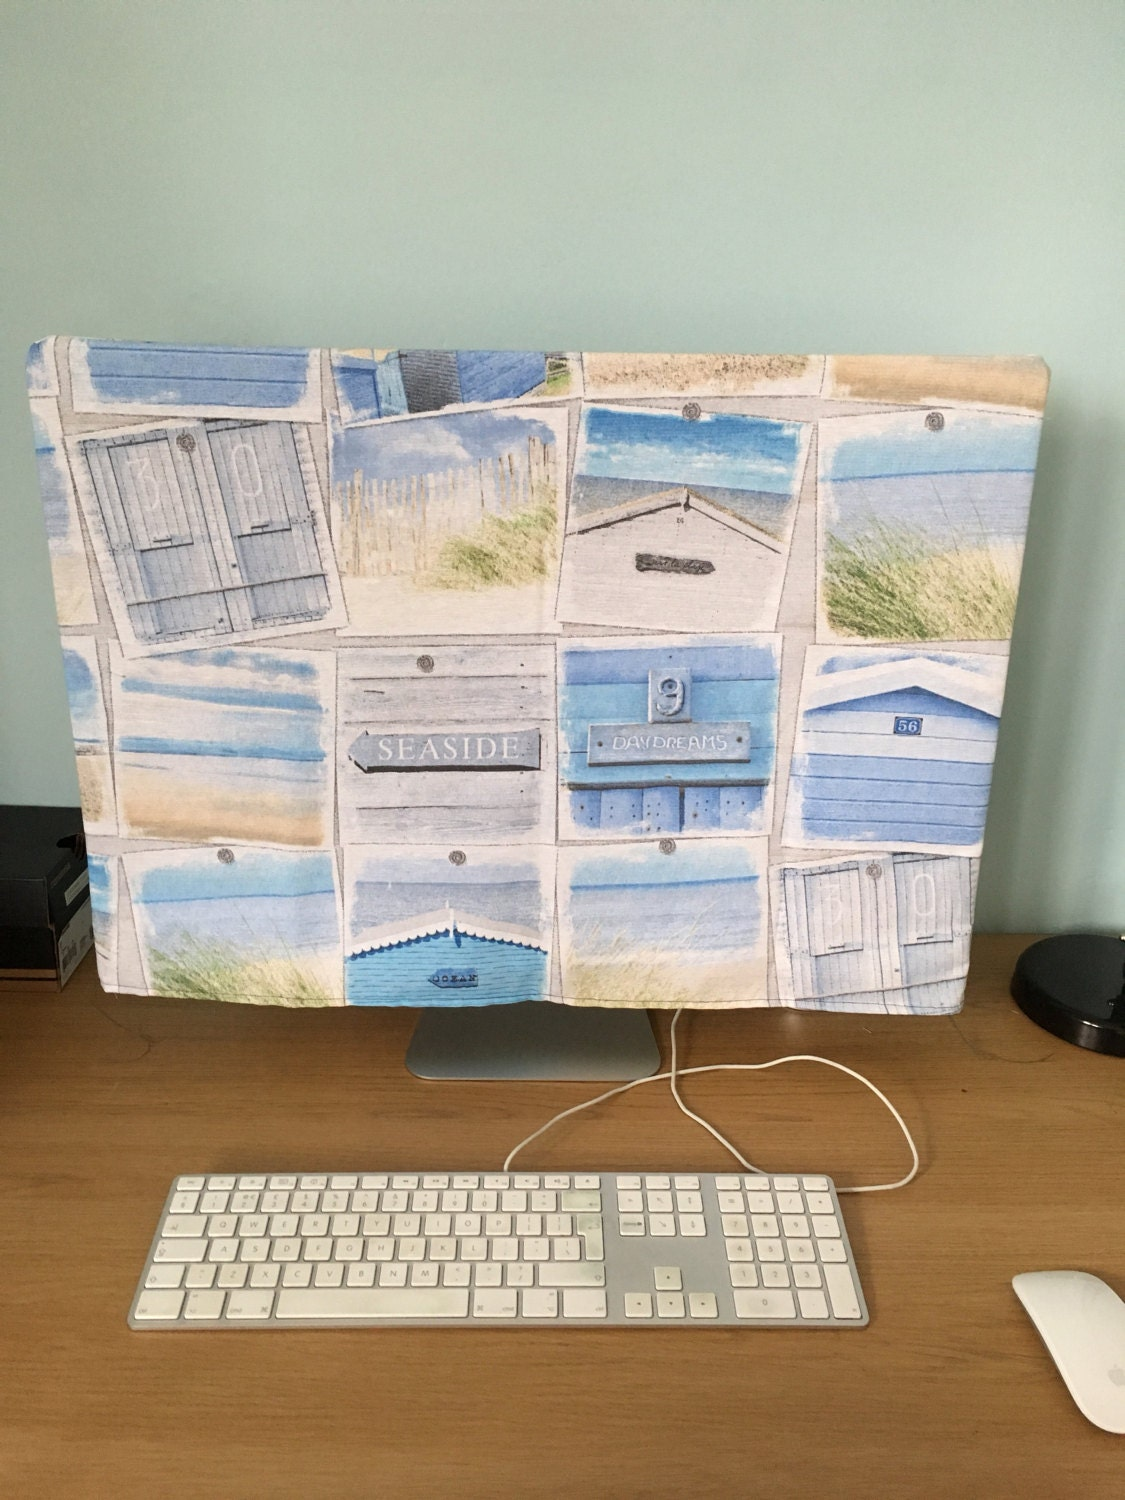 iMac full cover 27 inches